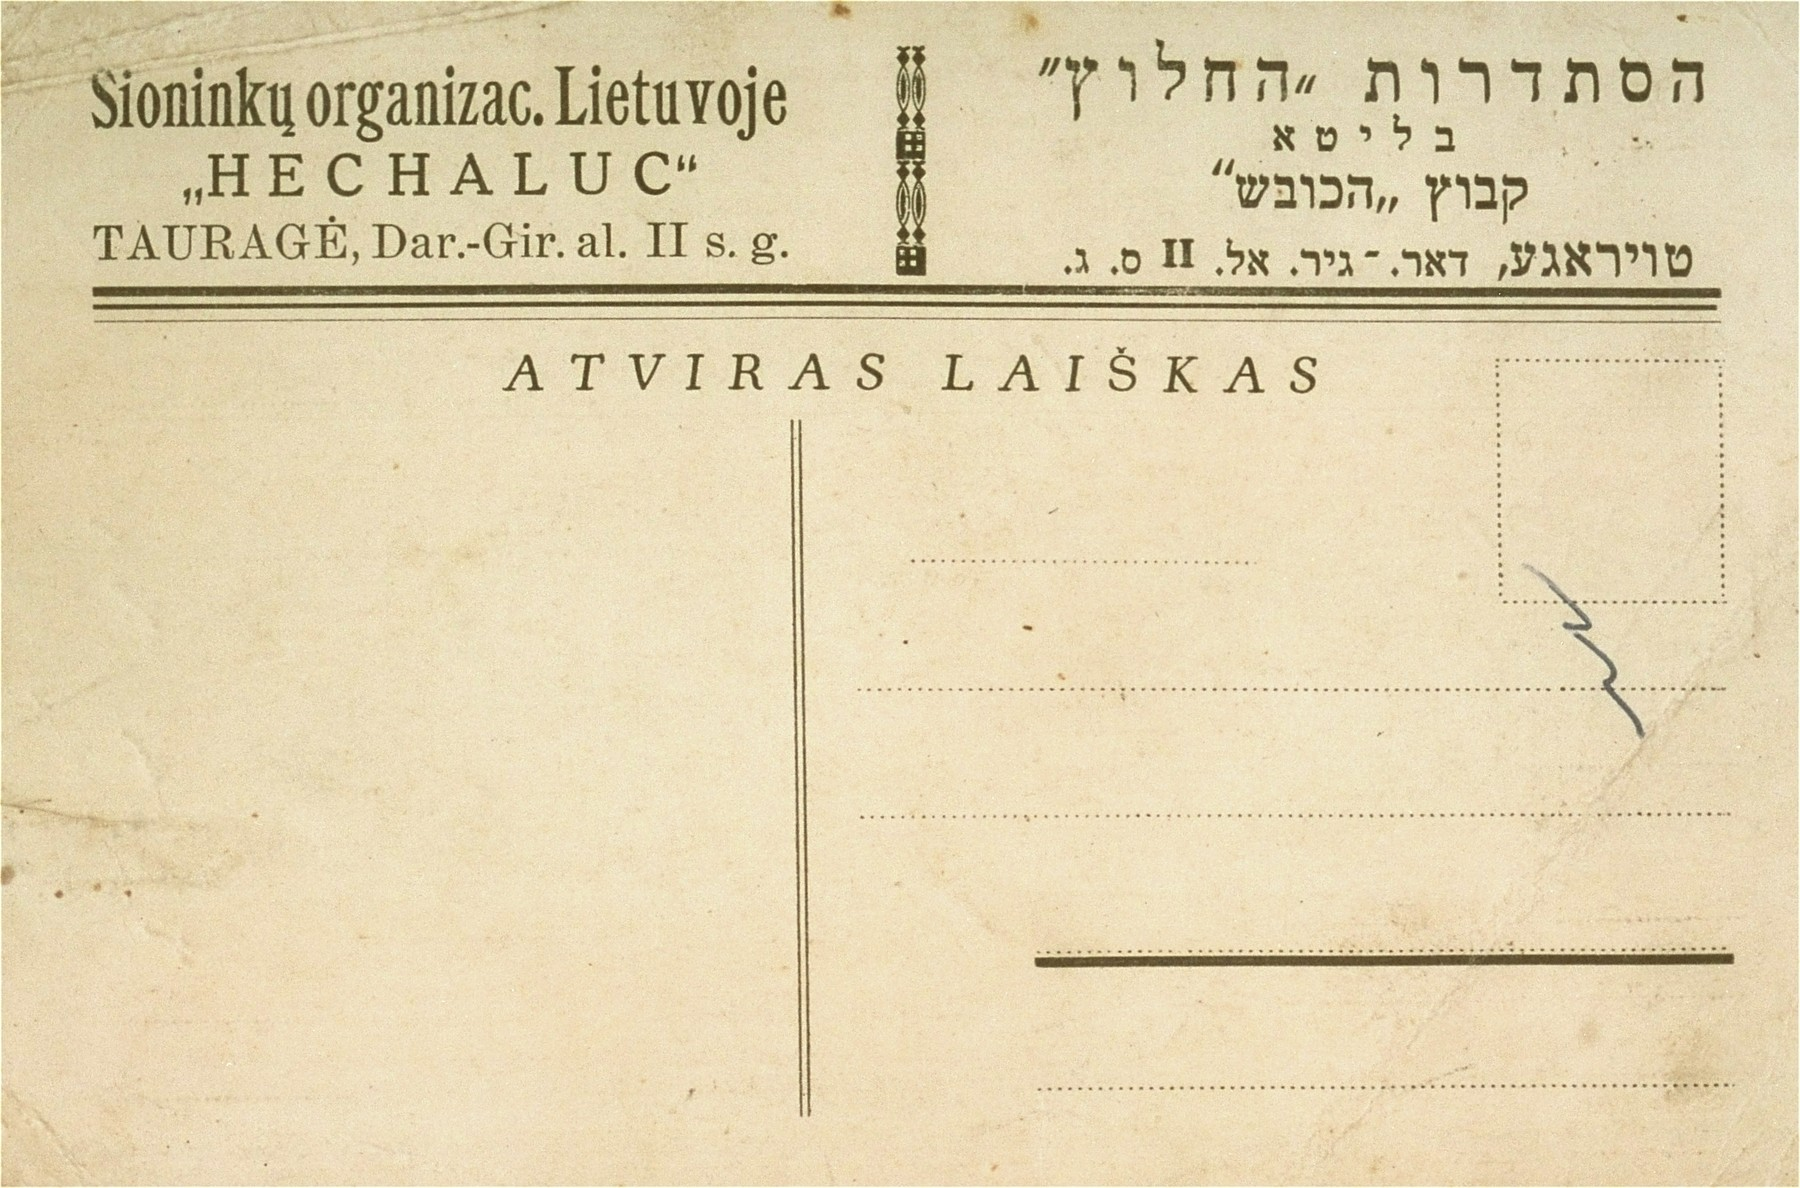 Blank postcard bearing the return address of the Kibbutz Hakovesh of the Zionist Hehalutz Organization of Lithuania in Taurage, Lithuania.